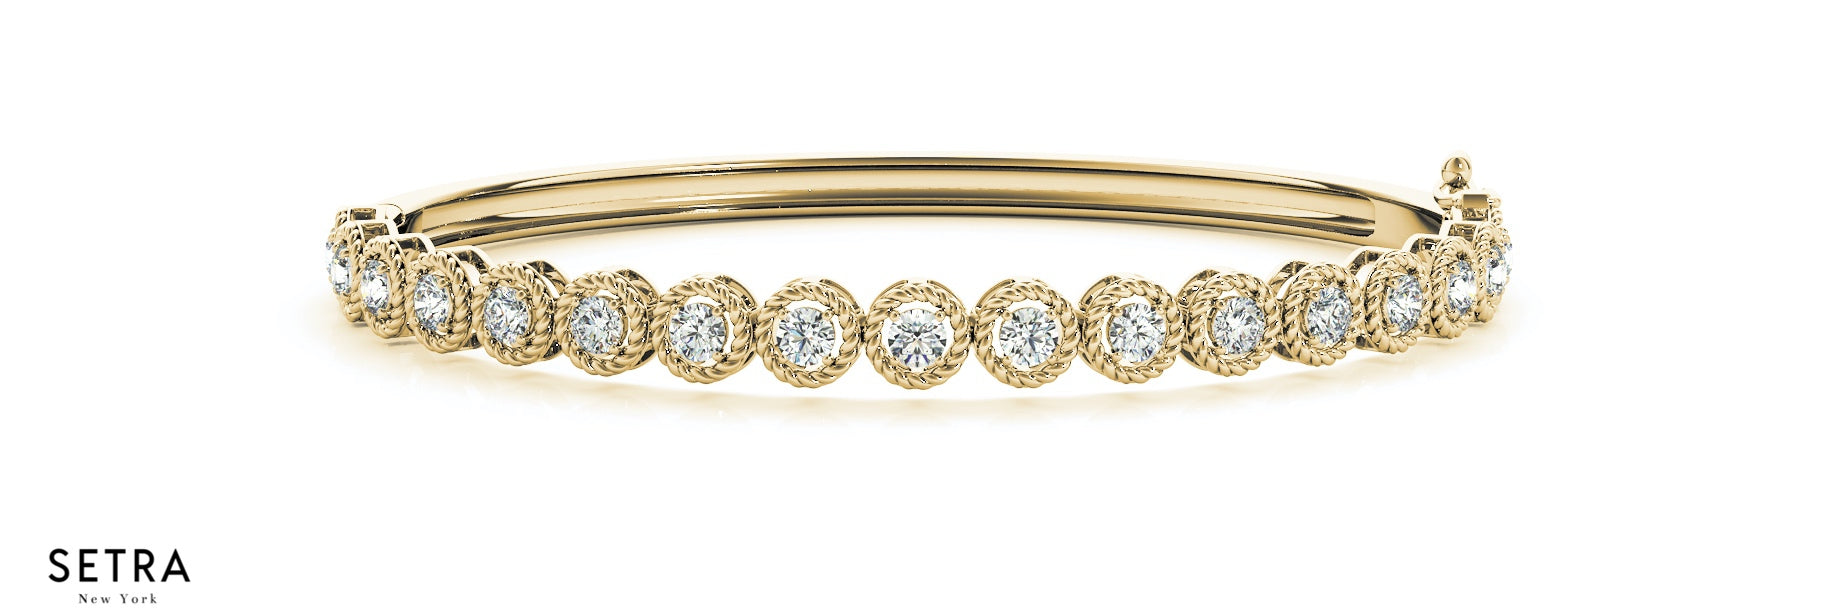 com braided london diamond bangle bracelet sku s gold rose londonjewelers collection